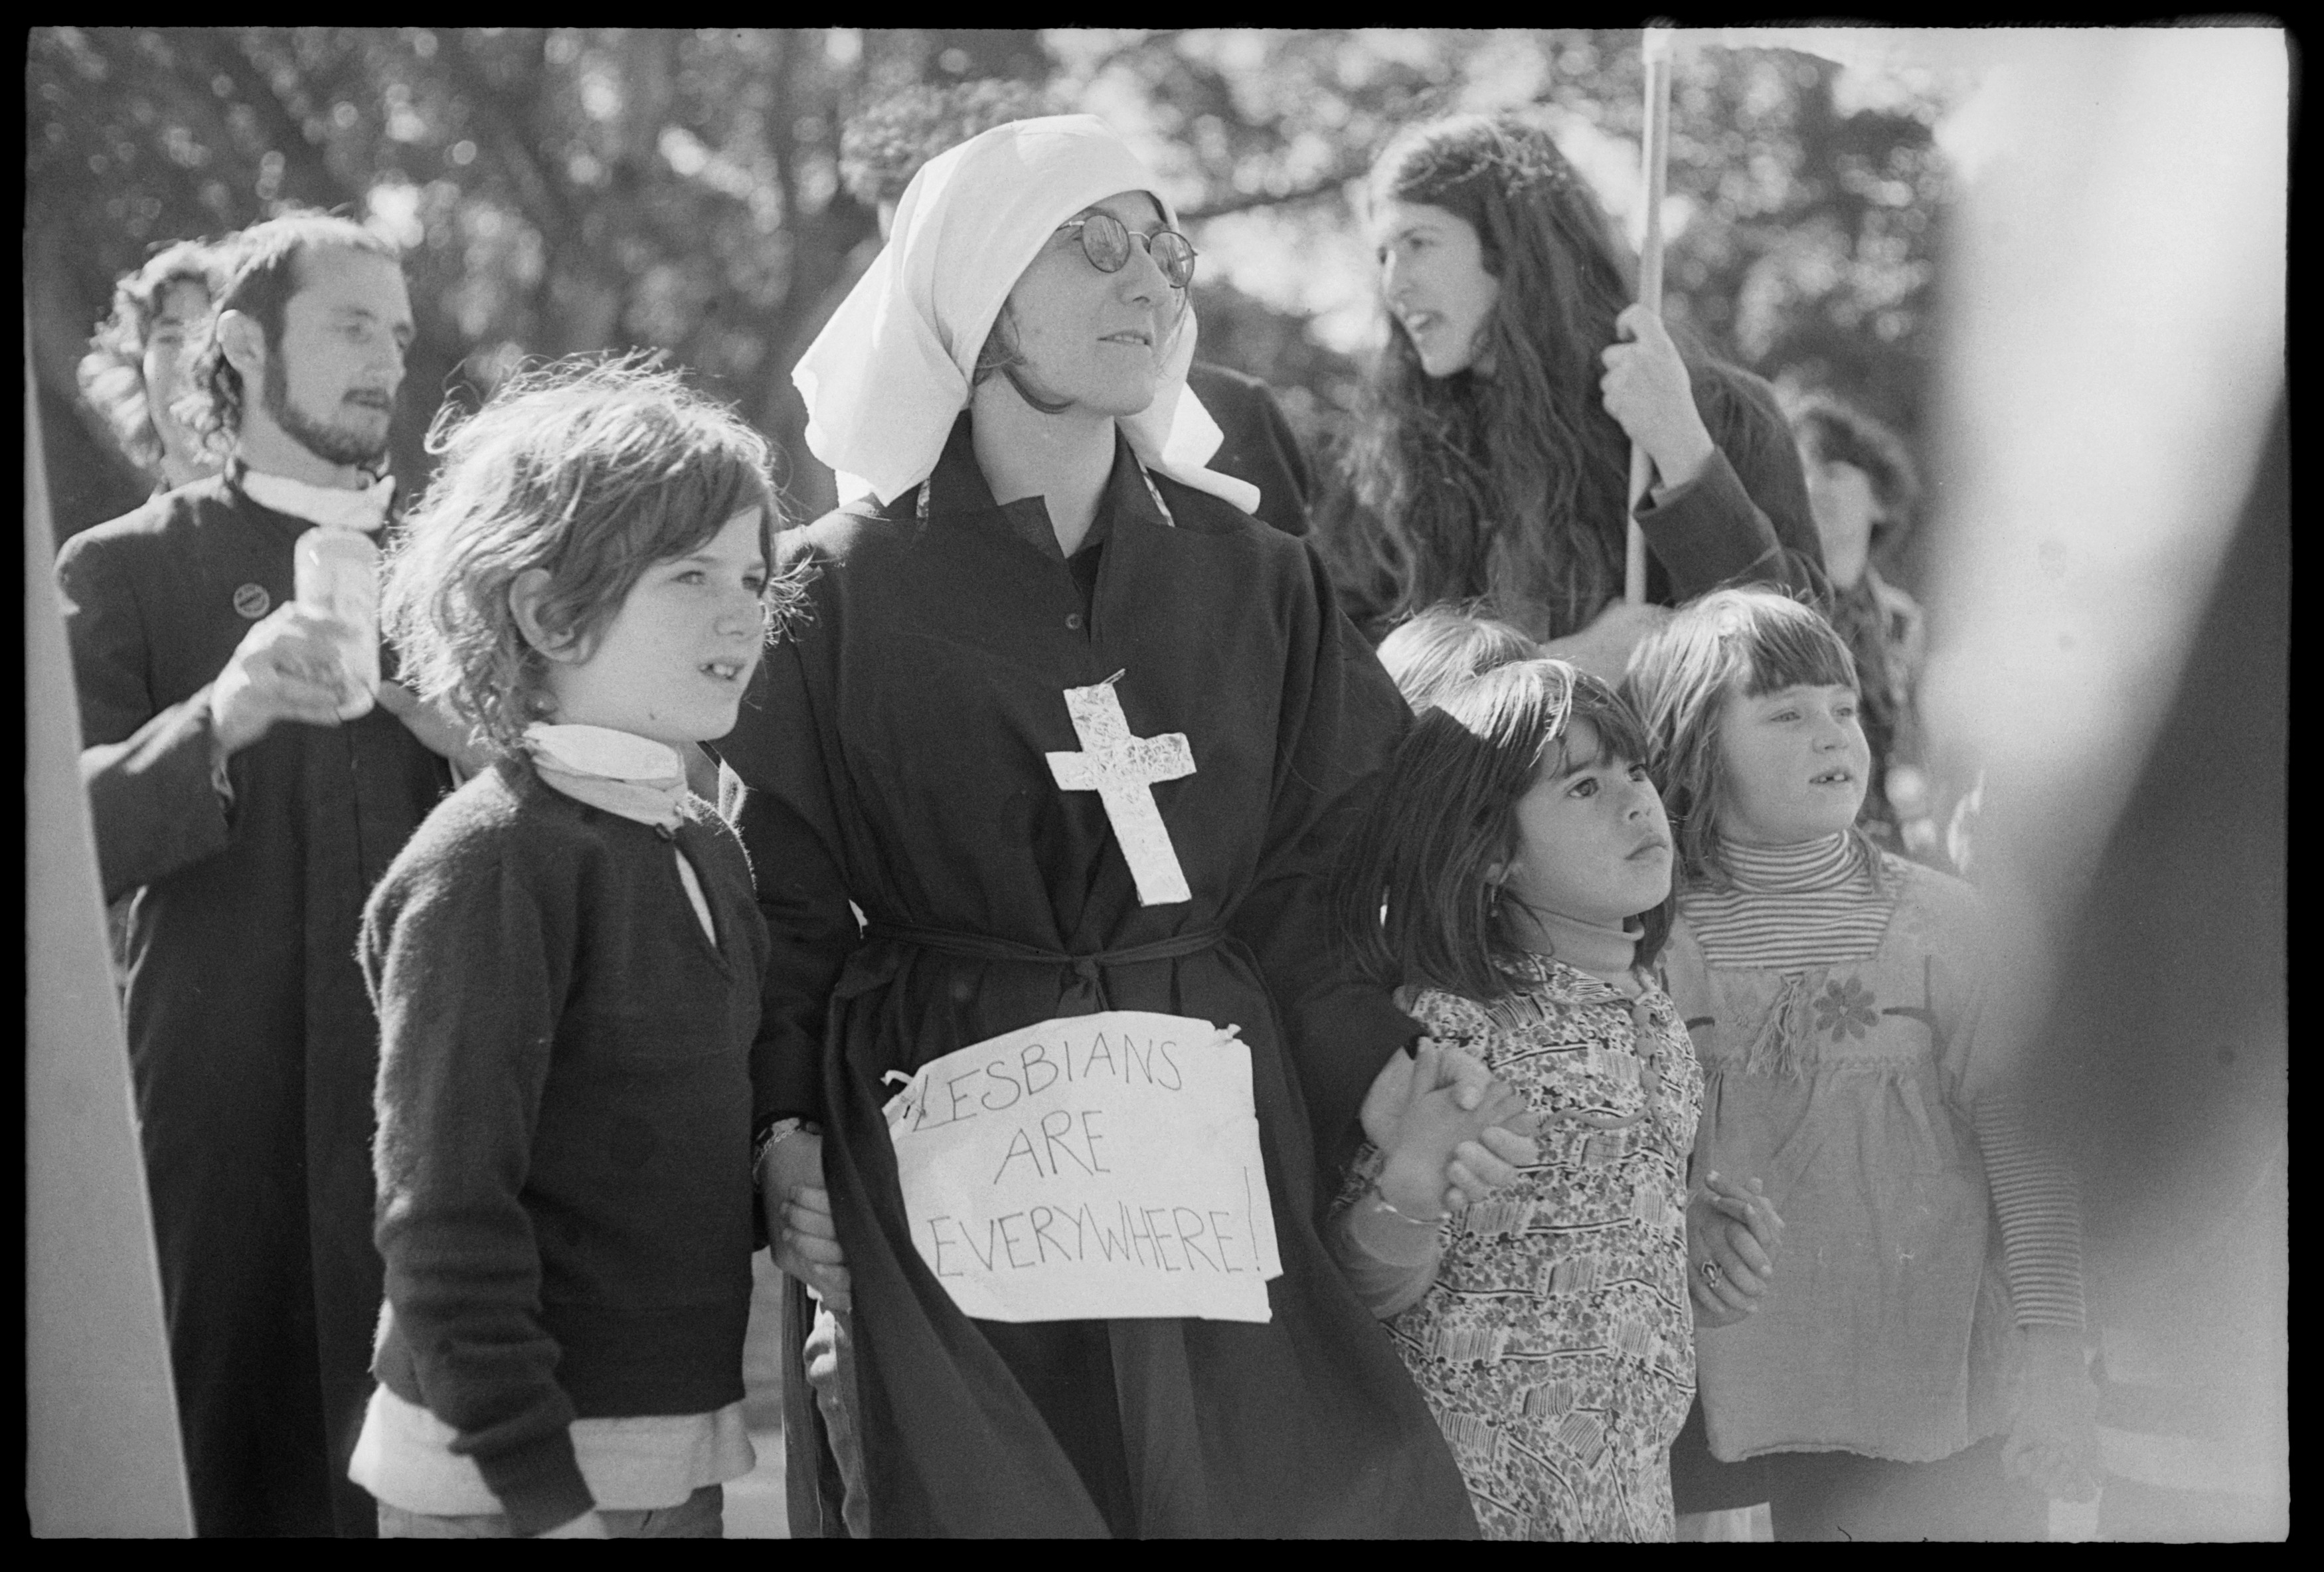 Placard: 'Lesbians are Everywhere', pinned to mock habit of woman with three children at gay liberation demonstration, Hyde Park, Sydney. Tribune Collection